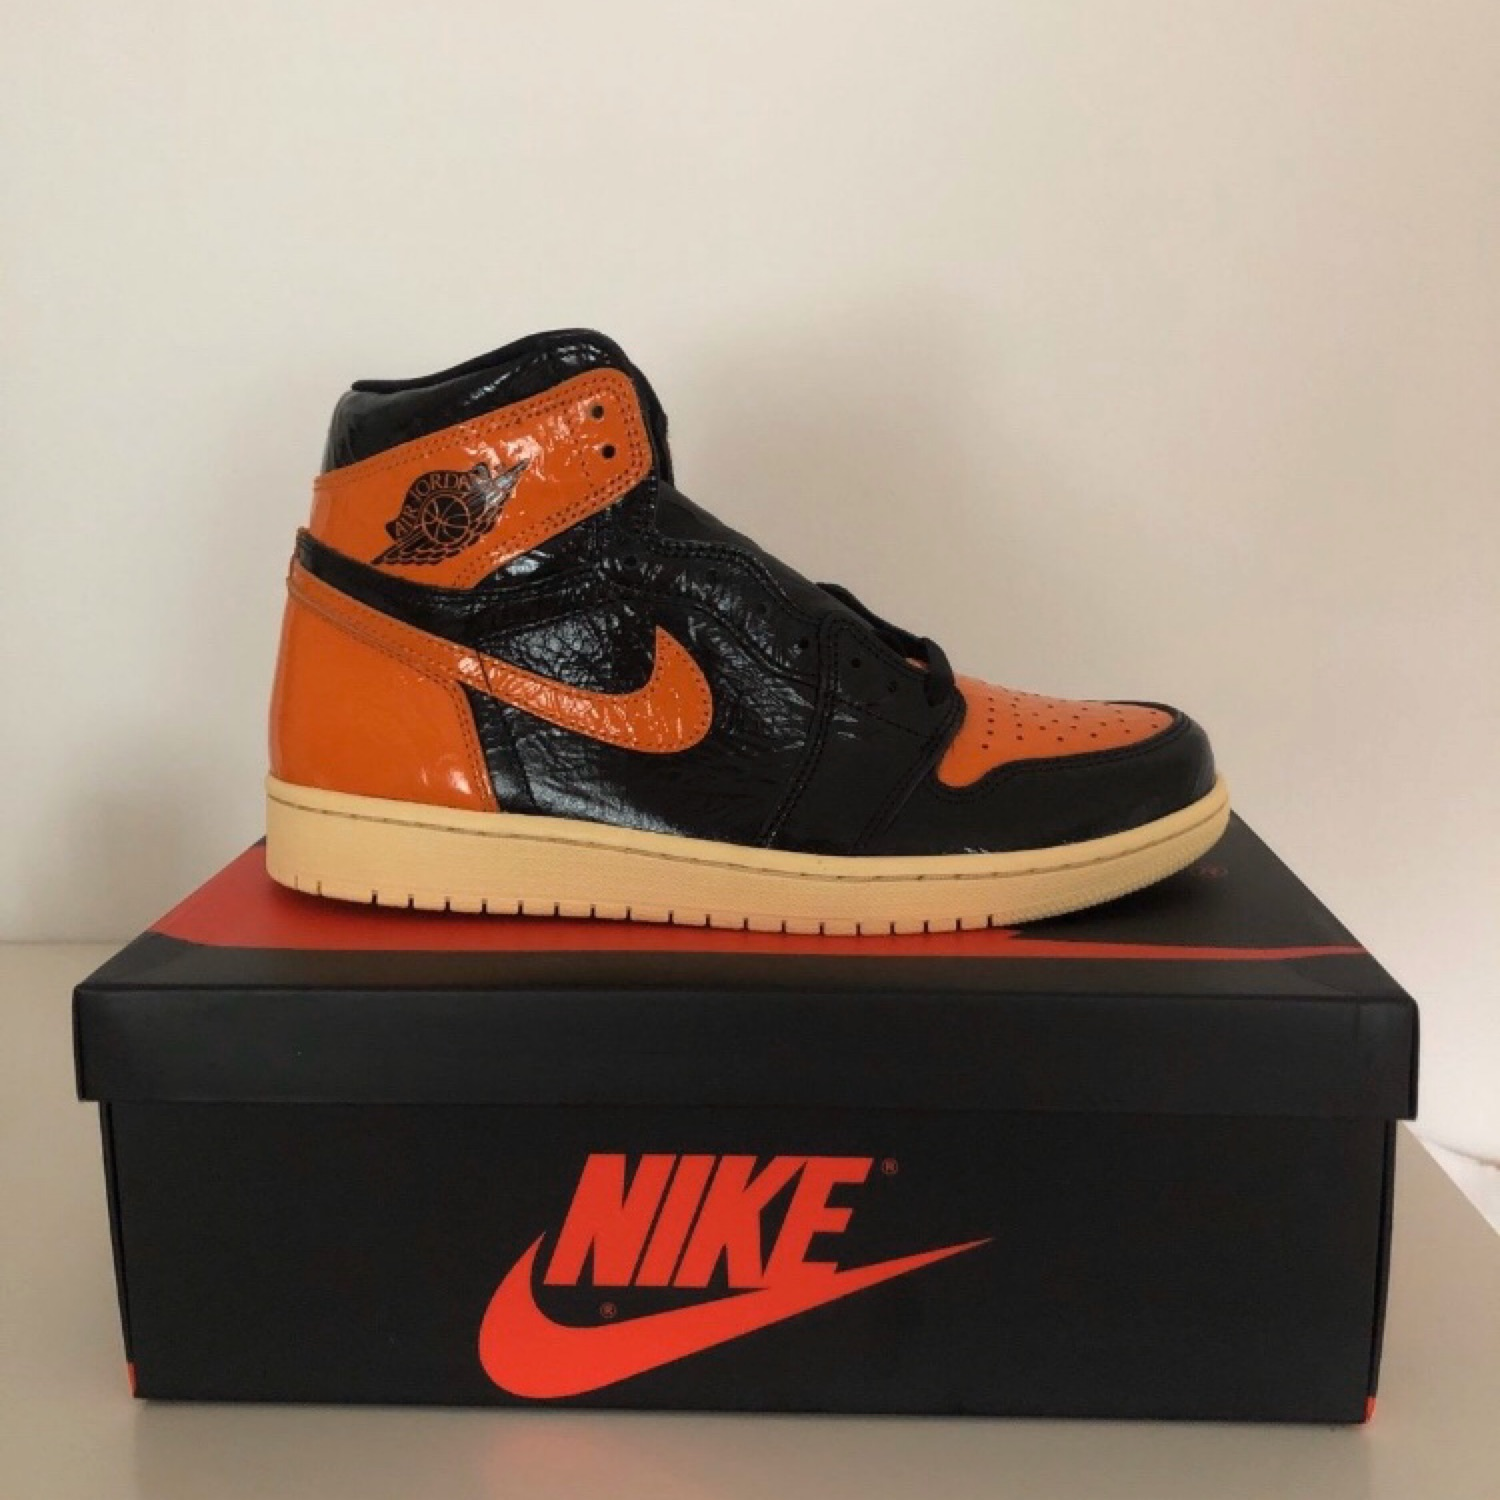 factory outlets high fashion hot new products Nike Jordan 1 Shattered Backboard 3.0